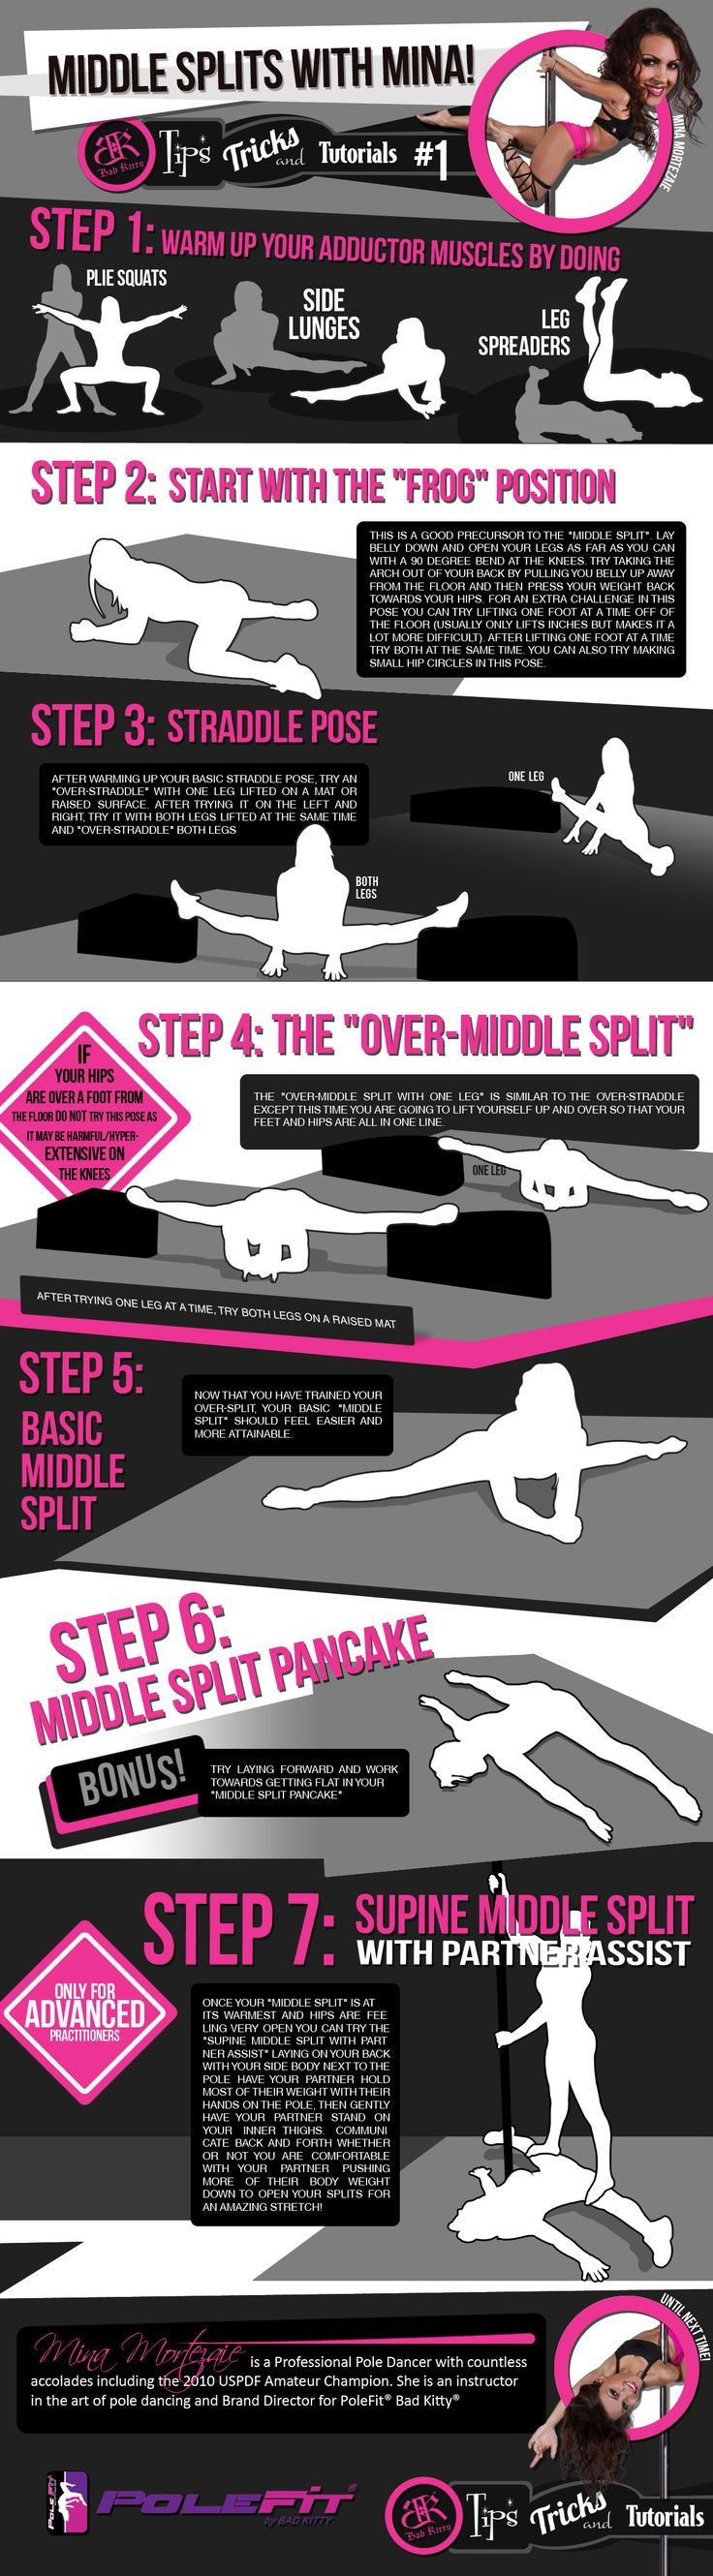 """PoleFit® Tips and Tricks Series: Want to increase your strength and flexibility? We teamed up with the Bad Kitty® Brand Ambassadors to bring you a series of """"Tips and Tricks."""" Tip #1: Middle Splits Flexibilty with Mina Mortezaie. #BadKittyPride #BadKittyBlog"""